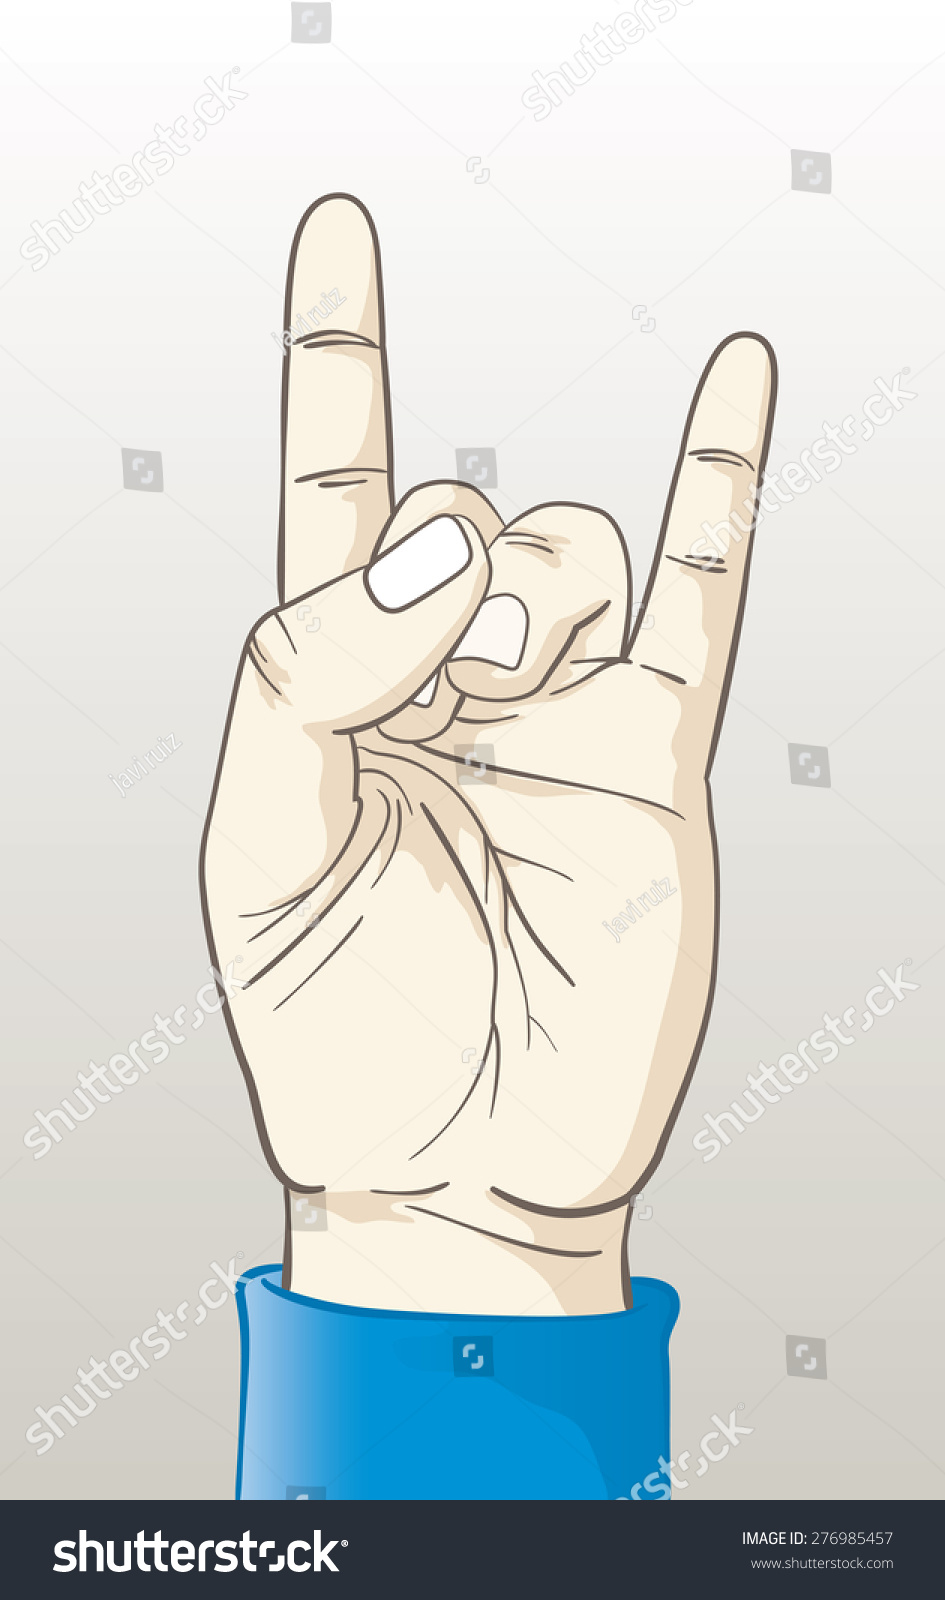 Royalty Free Rock And Roll Hand Gesture Vector 276985457 Stock